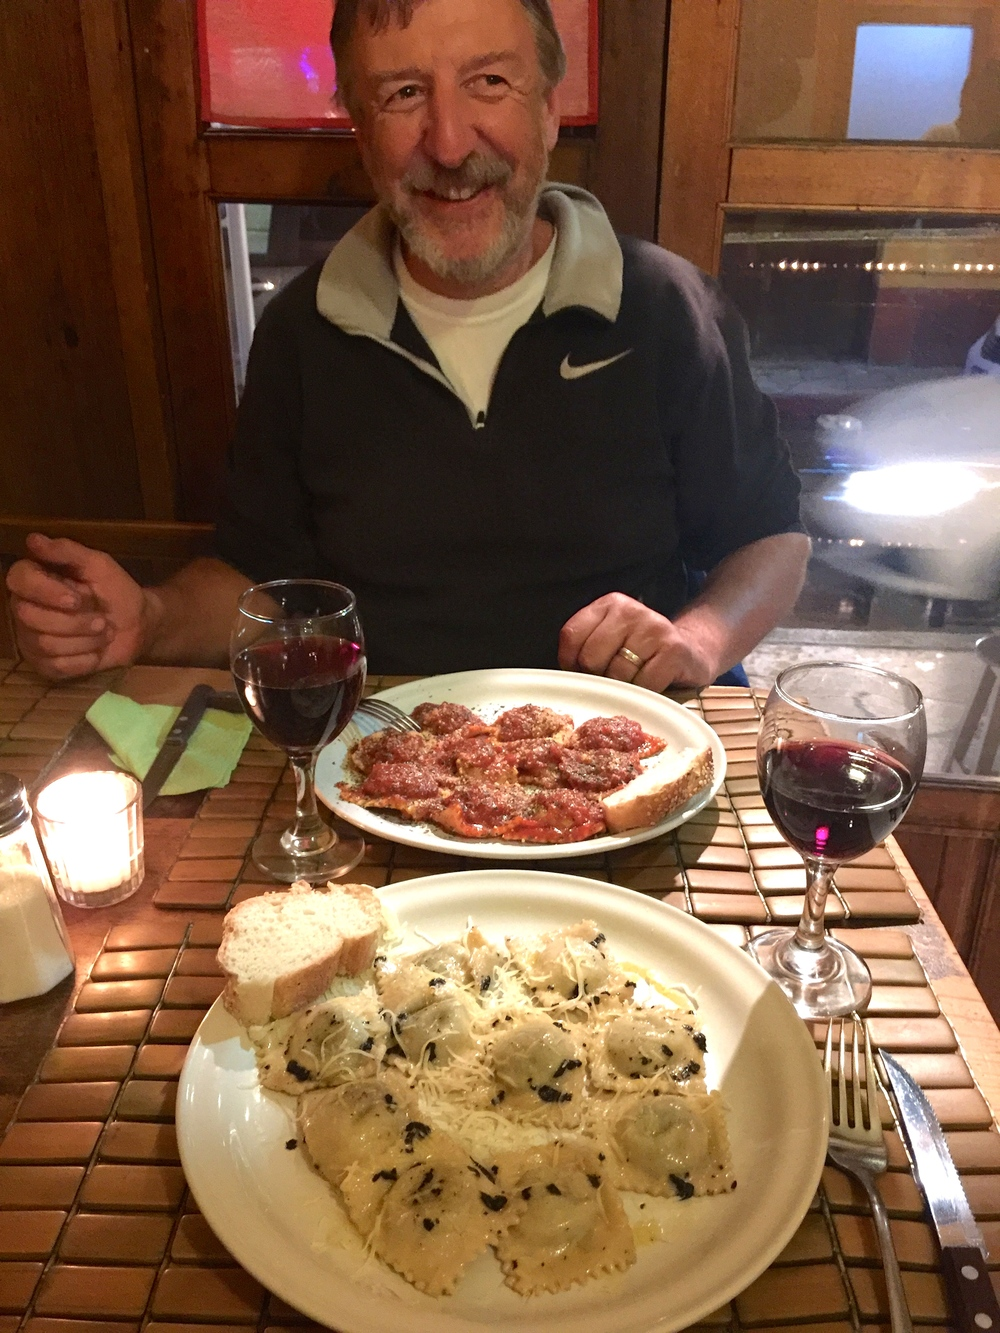 Final supper of fresh ravioli at an Italian restaurant. Divine!